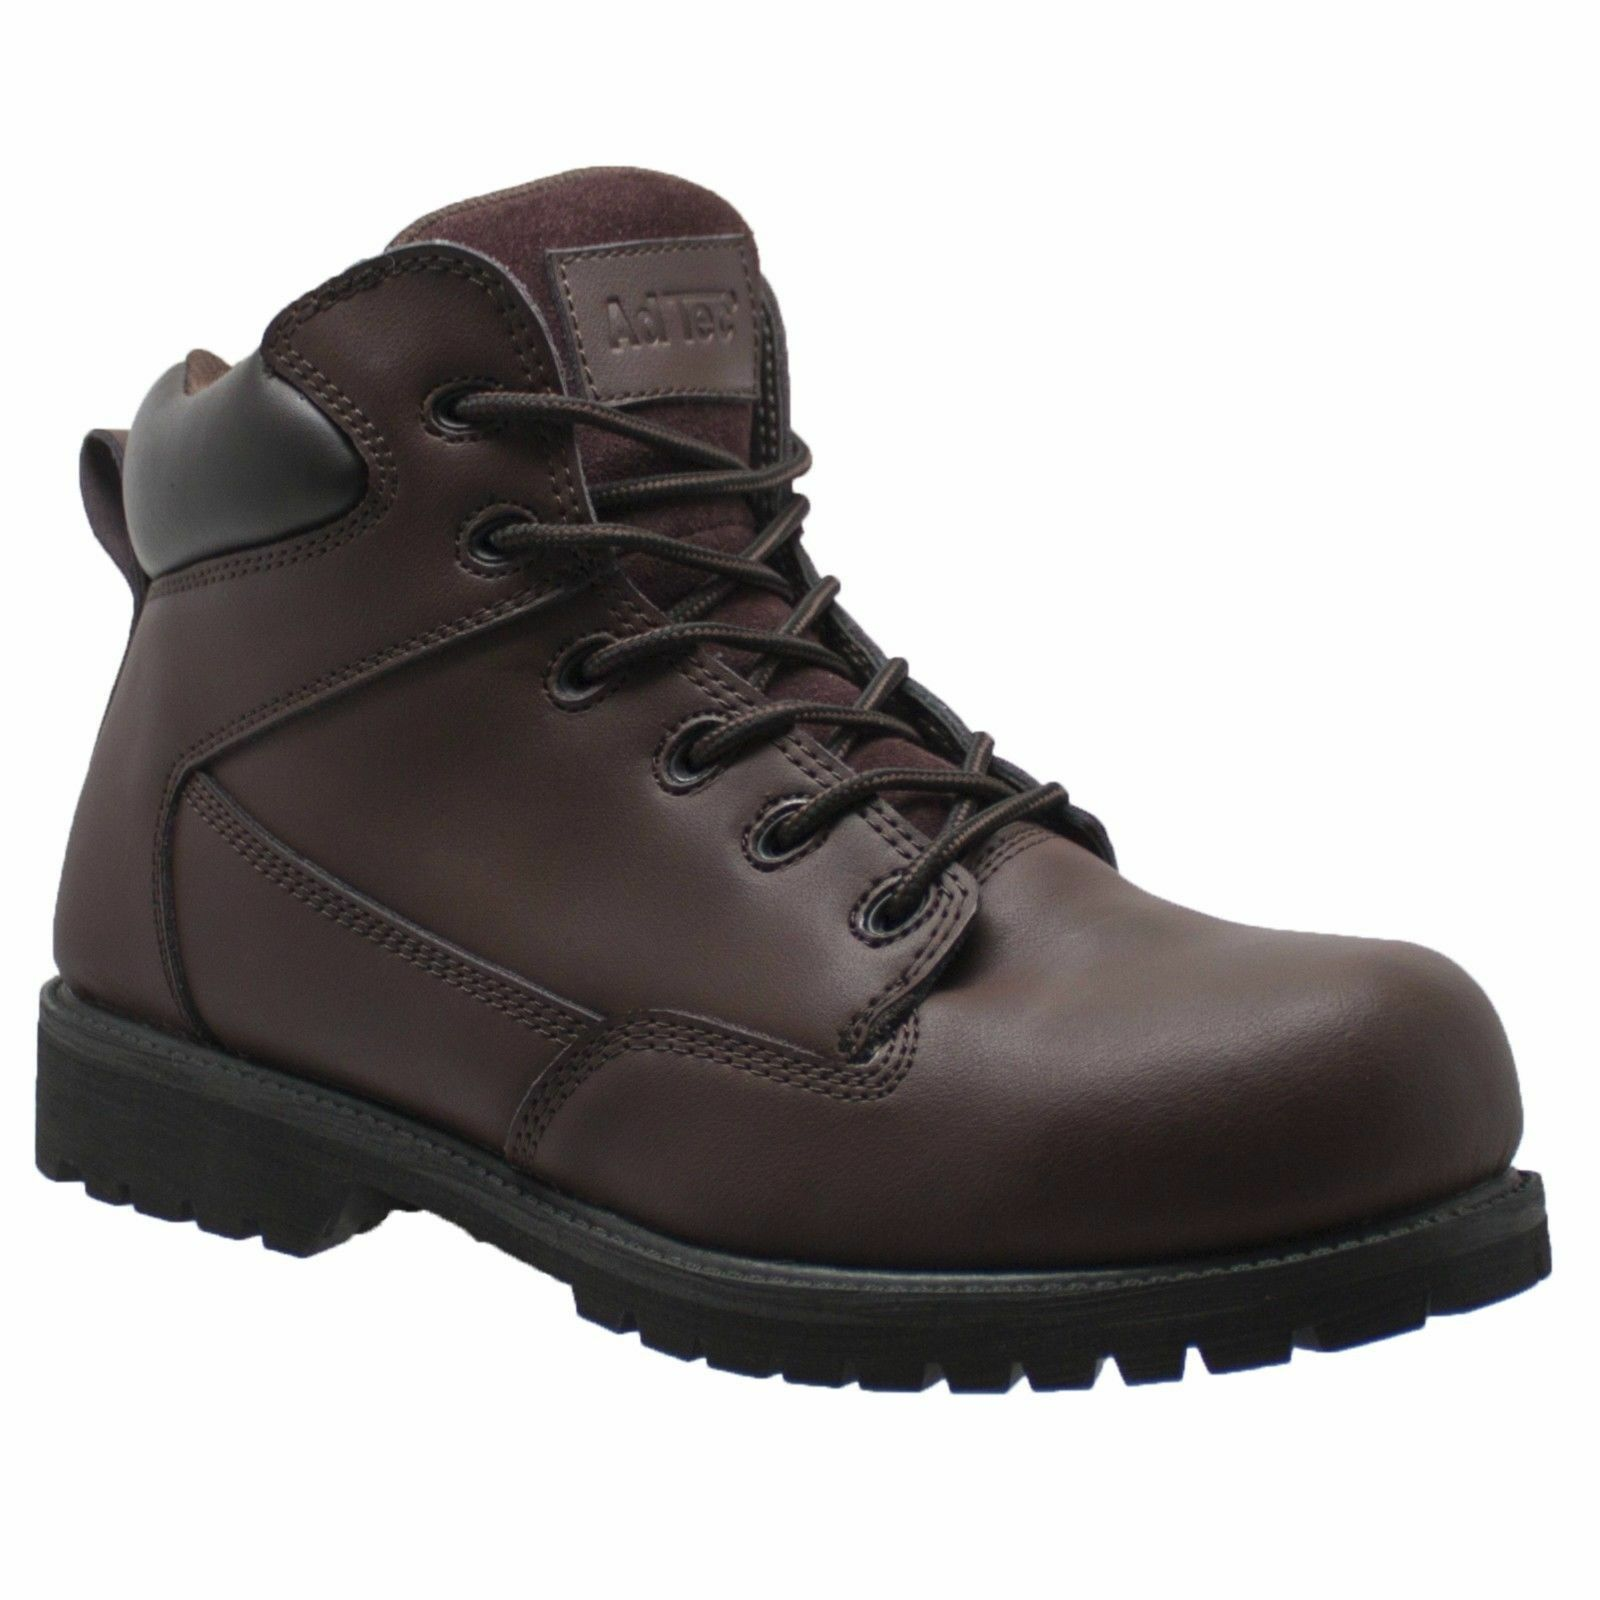 NEW MENS AD-TEC 6  STEEL TOE LEATHER WORK BOOTS   SHOES - U.S. 9.5 WIDE